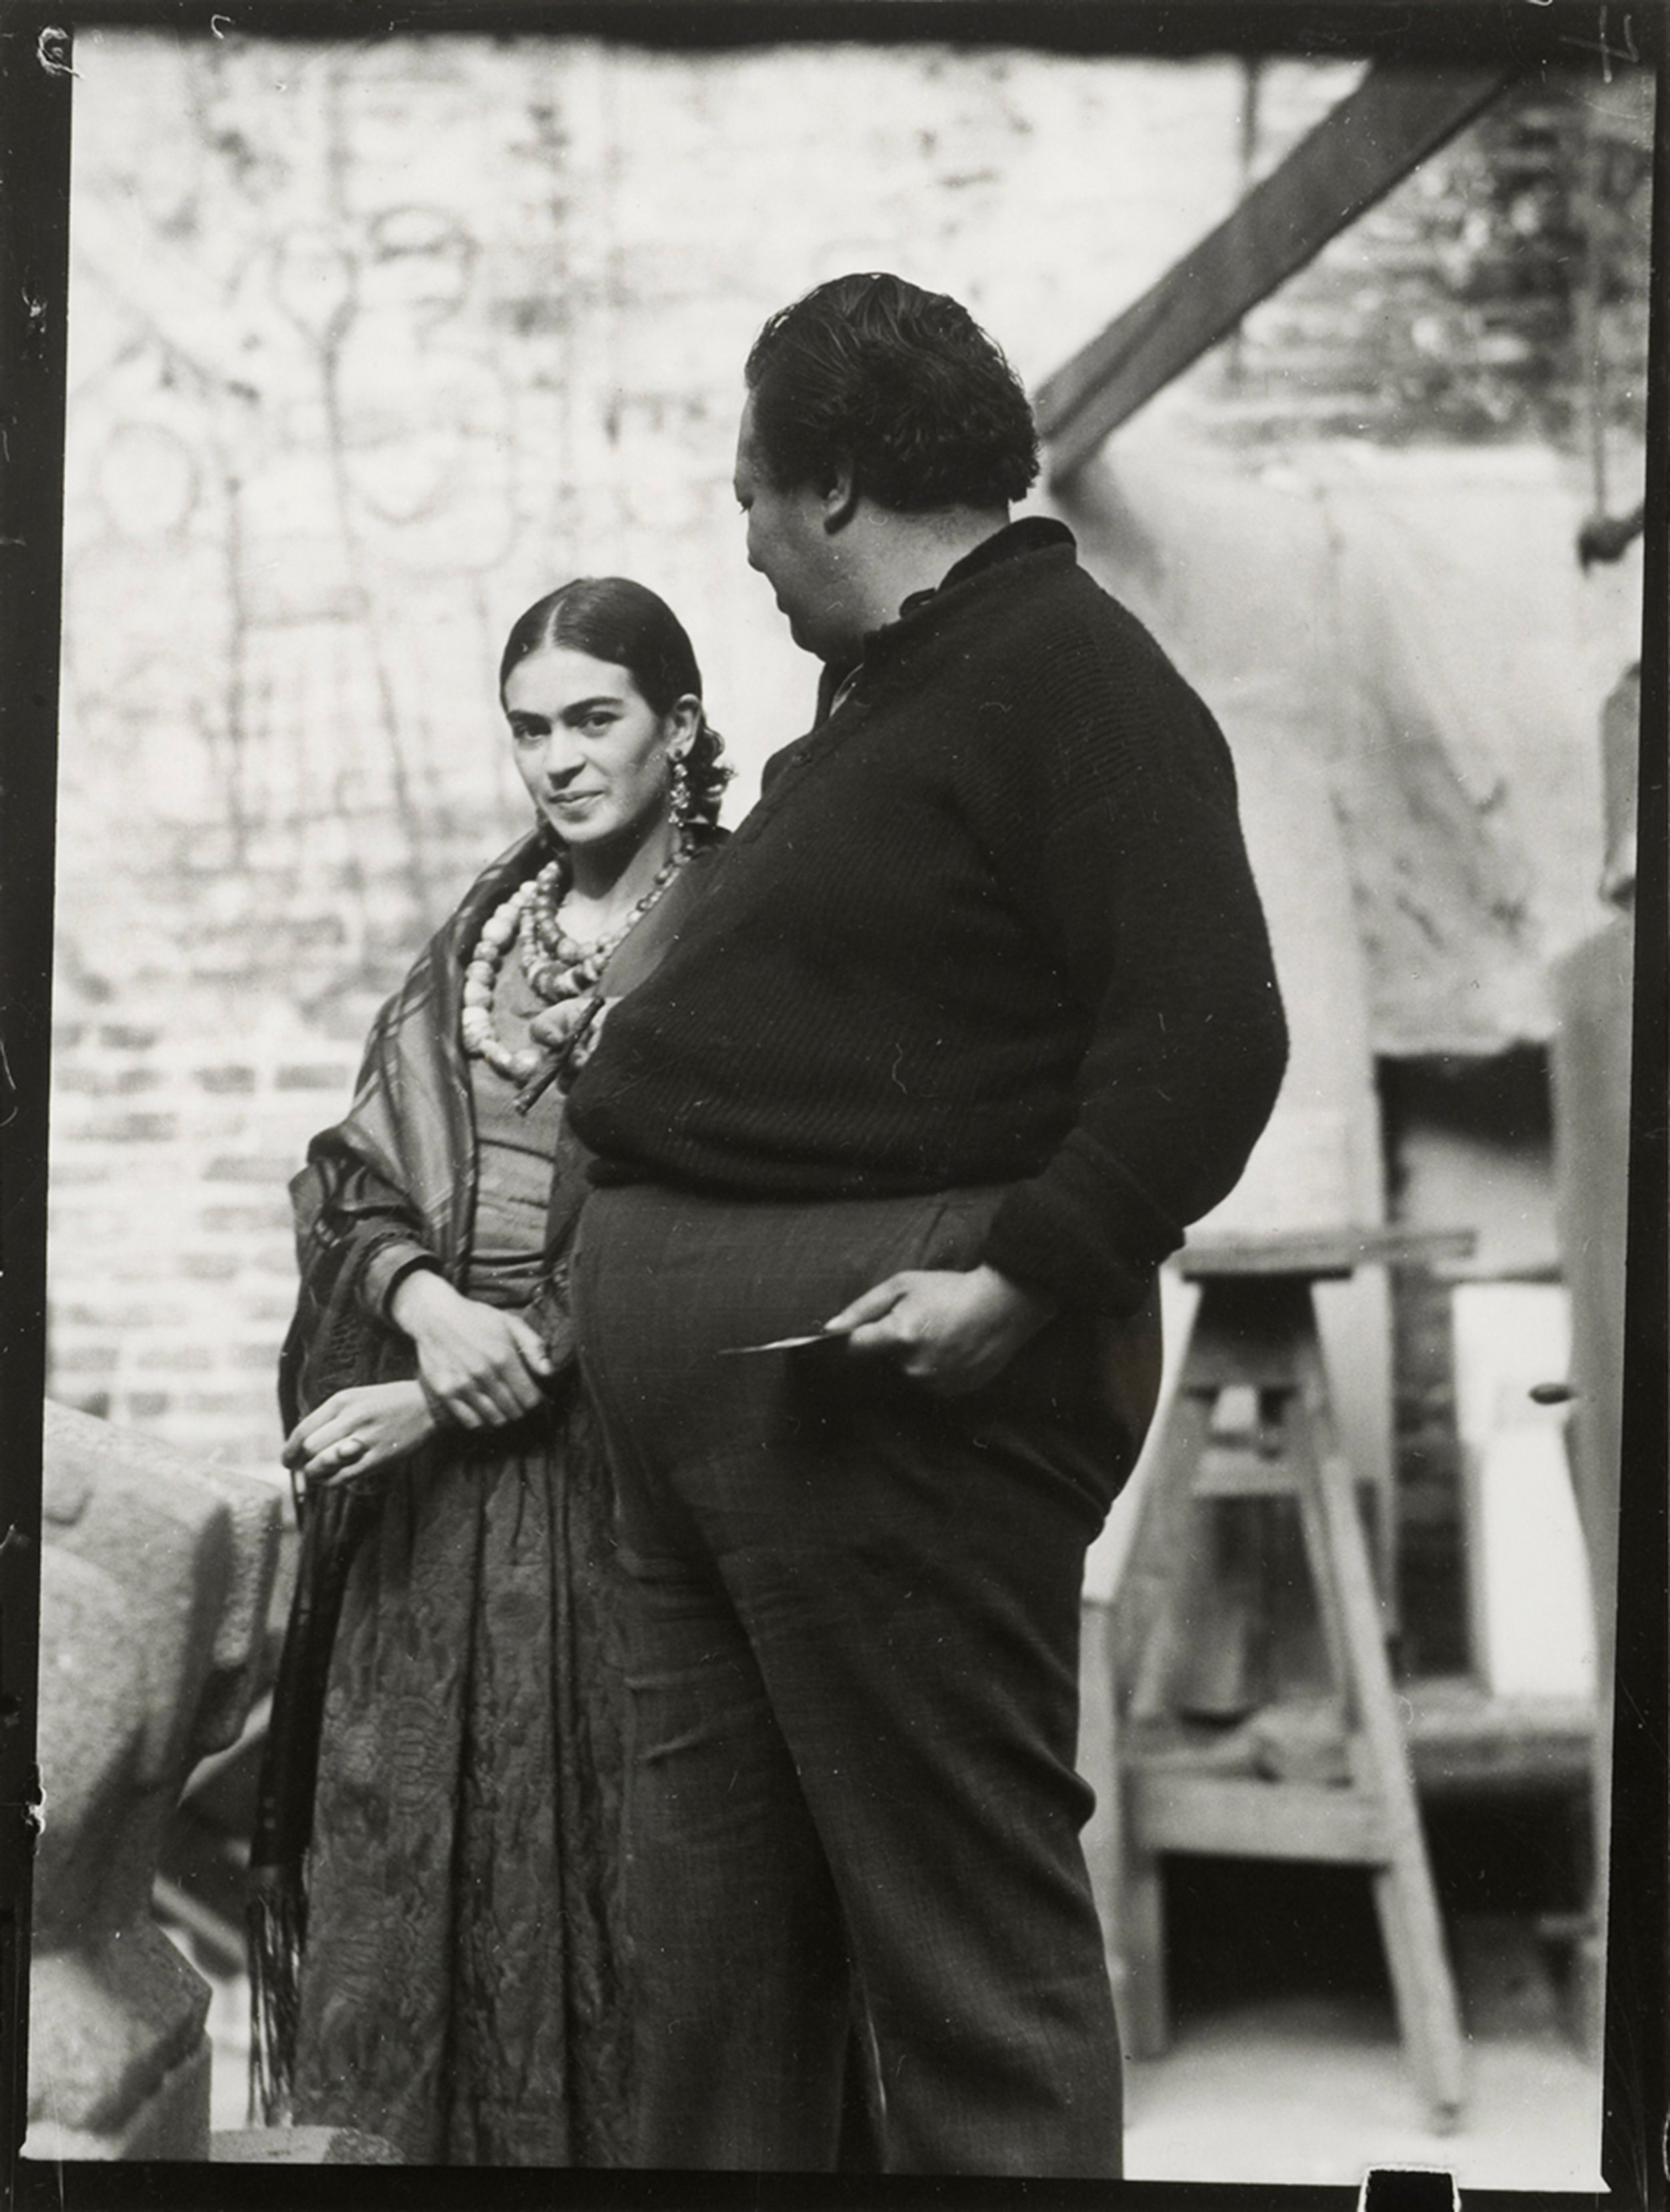 Diego Rivera & Frida Kahlo in San Francisco, c. 1930